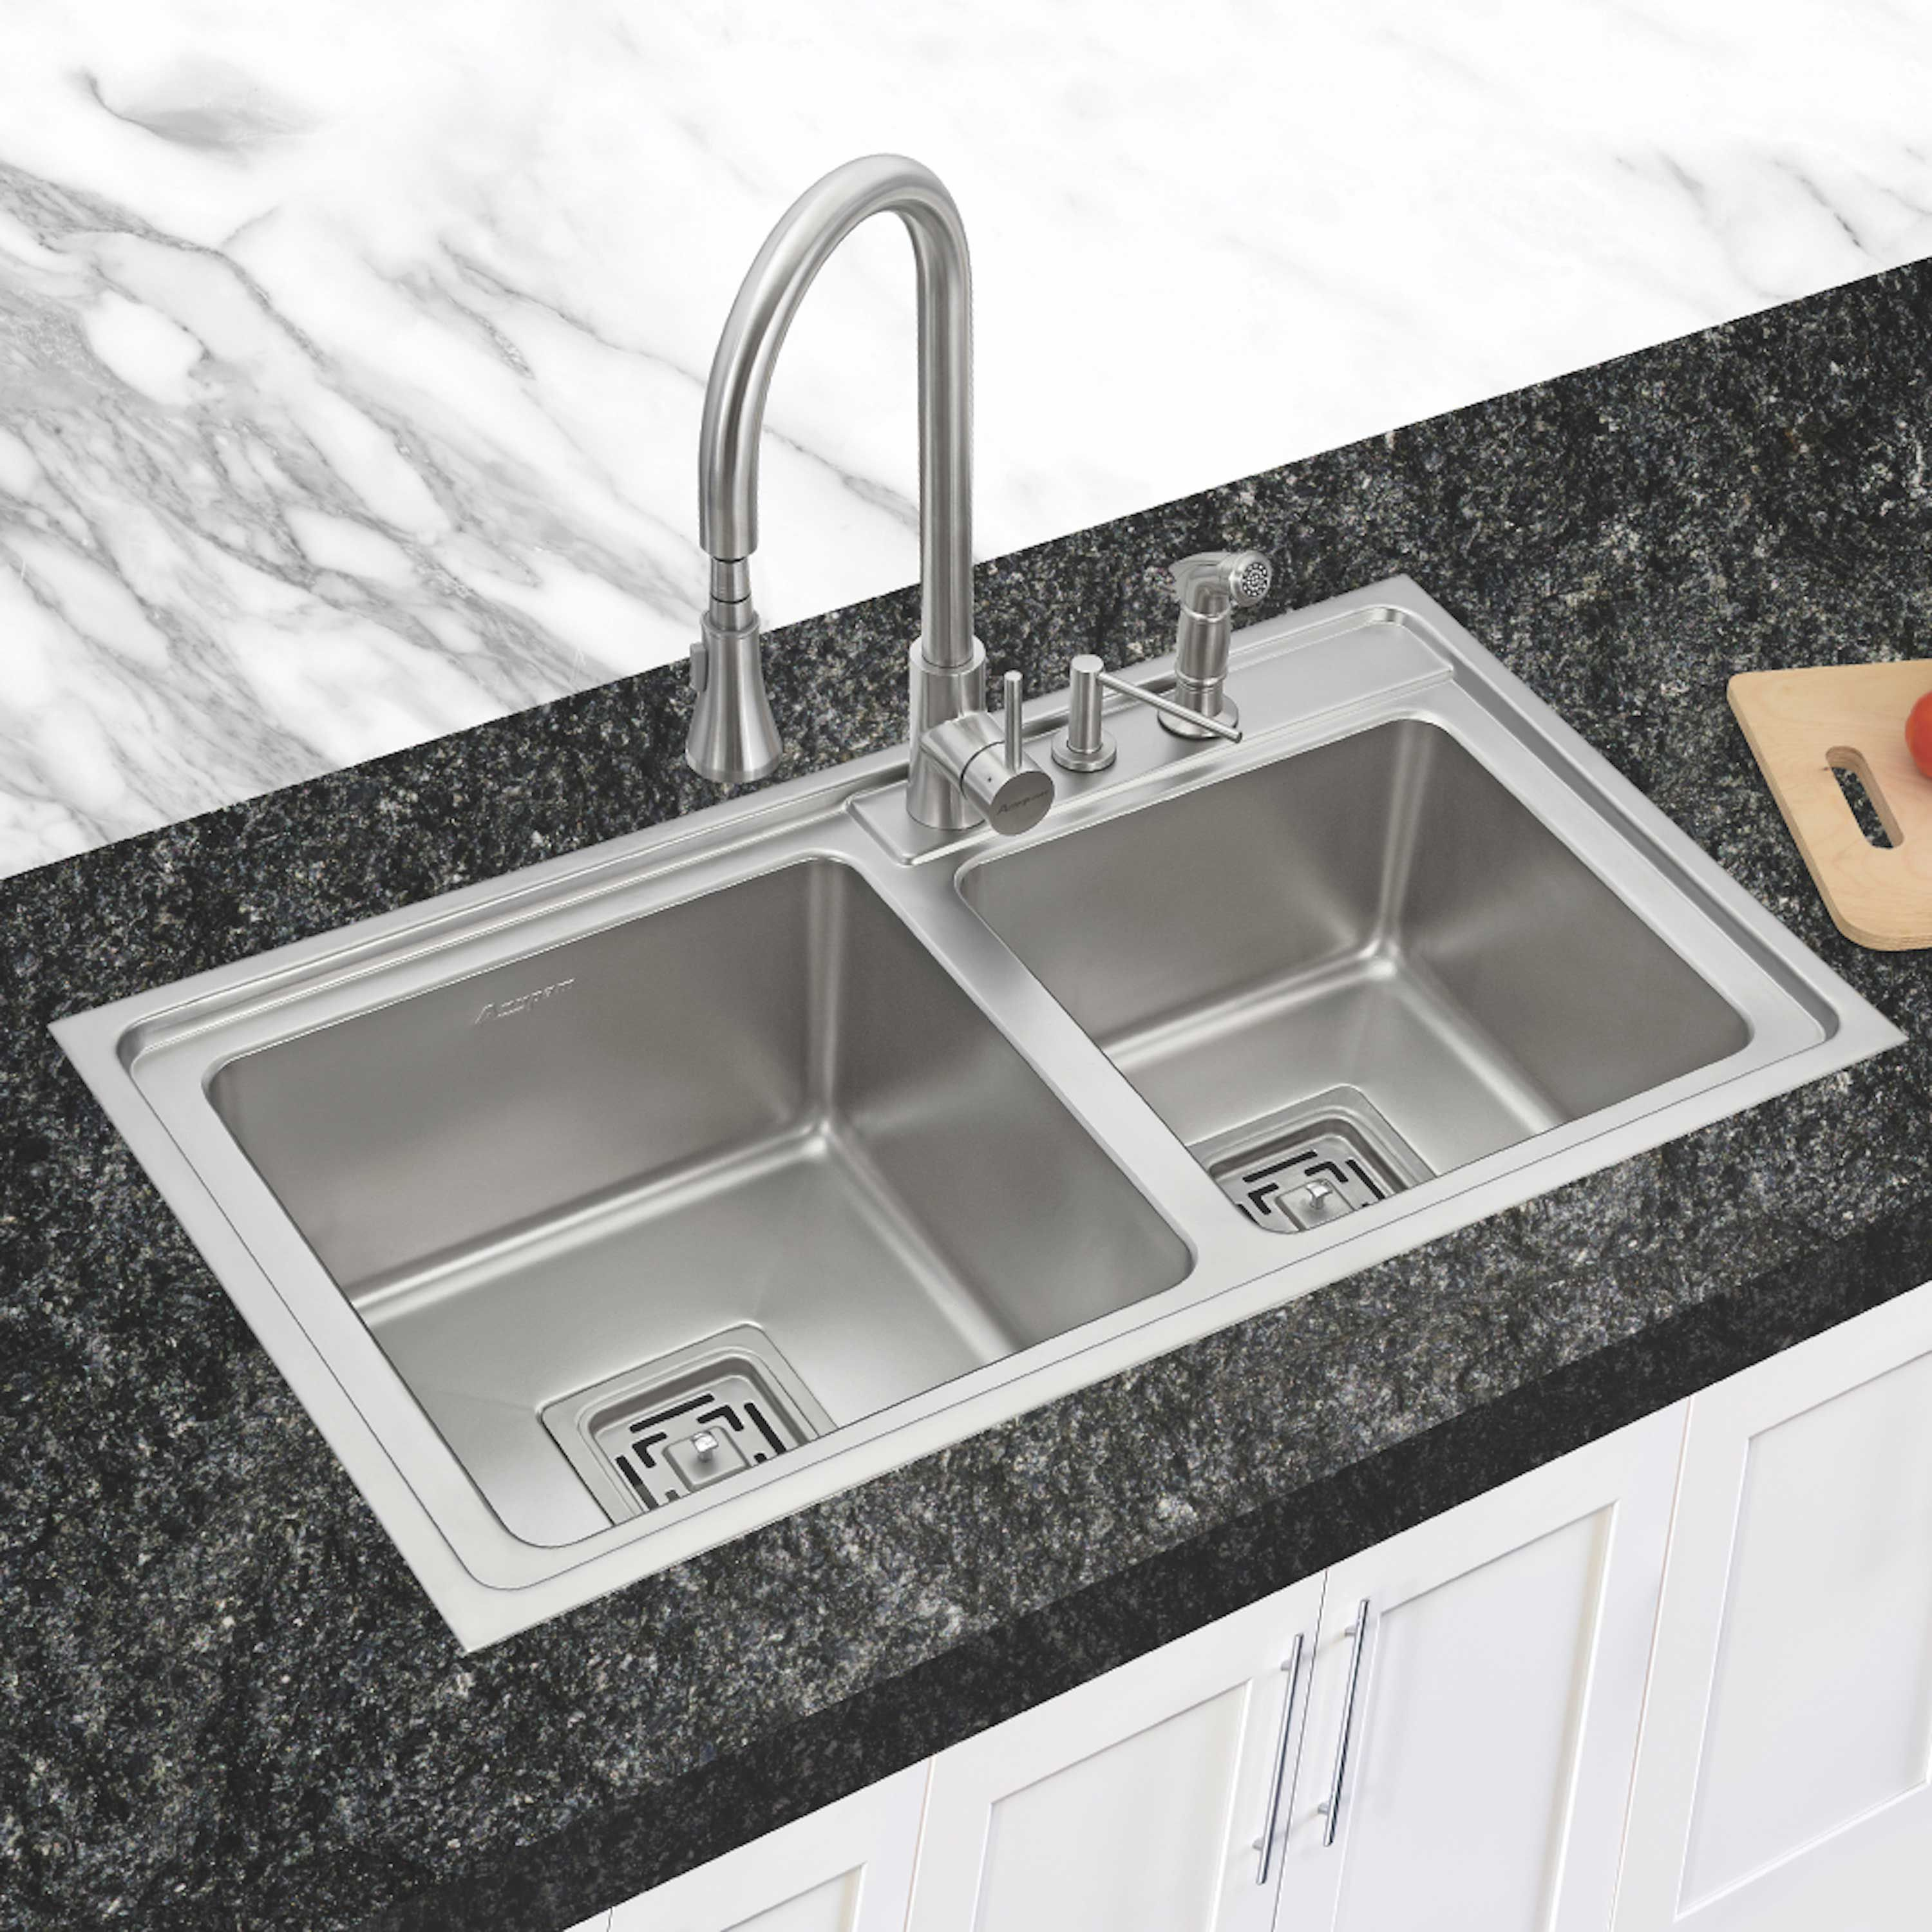 Phenomenal Anupam Stainless Steel Double Bowl Sink Without Drainboard Interior Design Ideas Truasarkarijobsexamcom